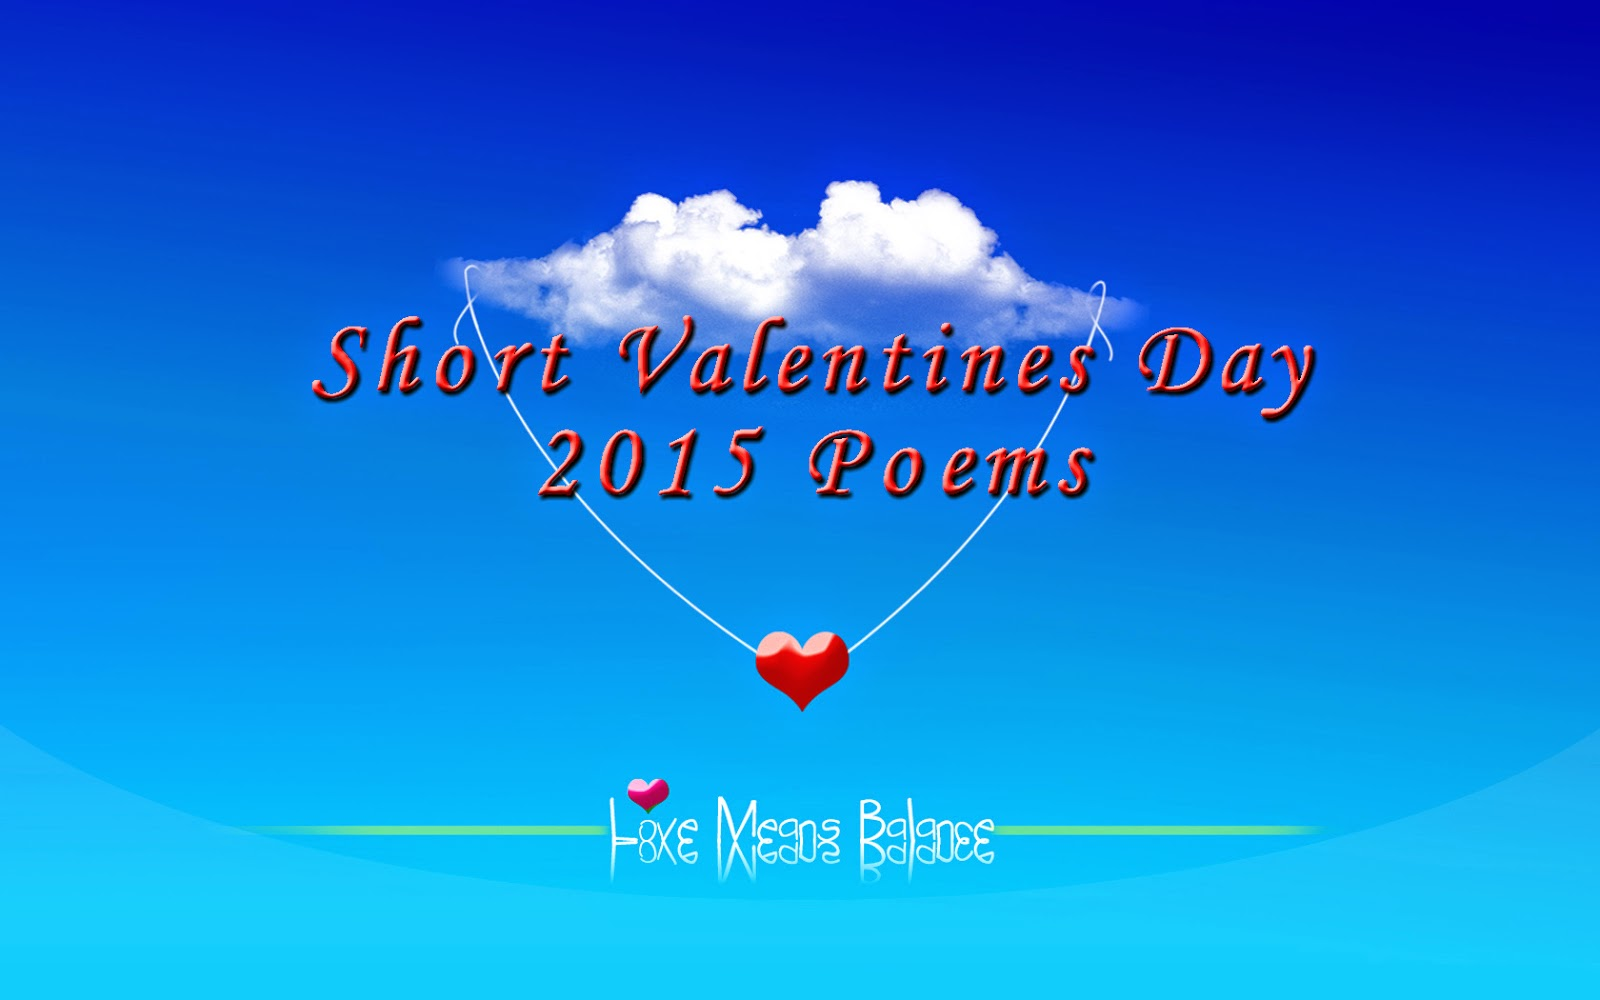 Short Valentines Day 2015 Poems